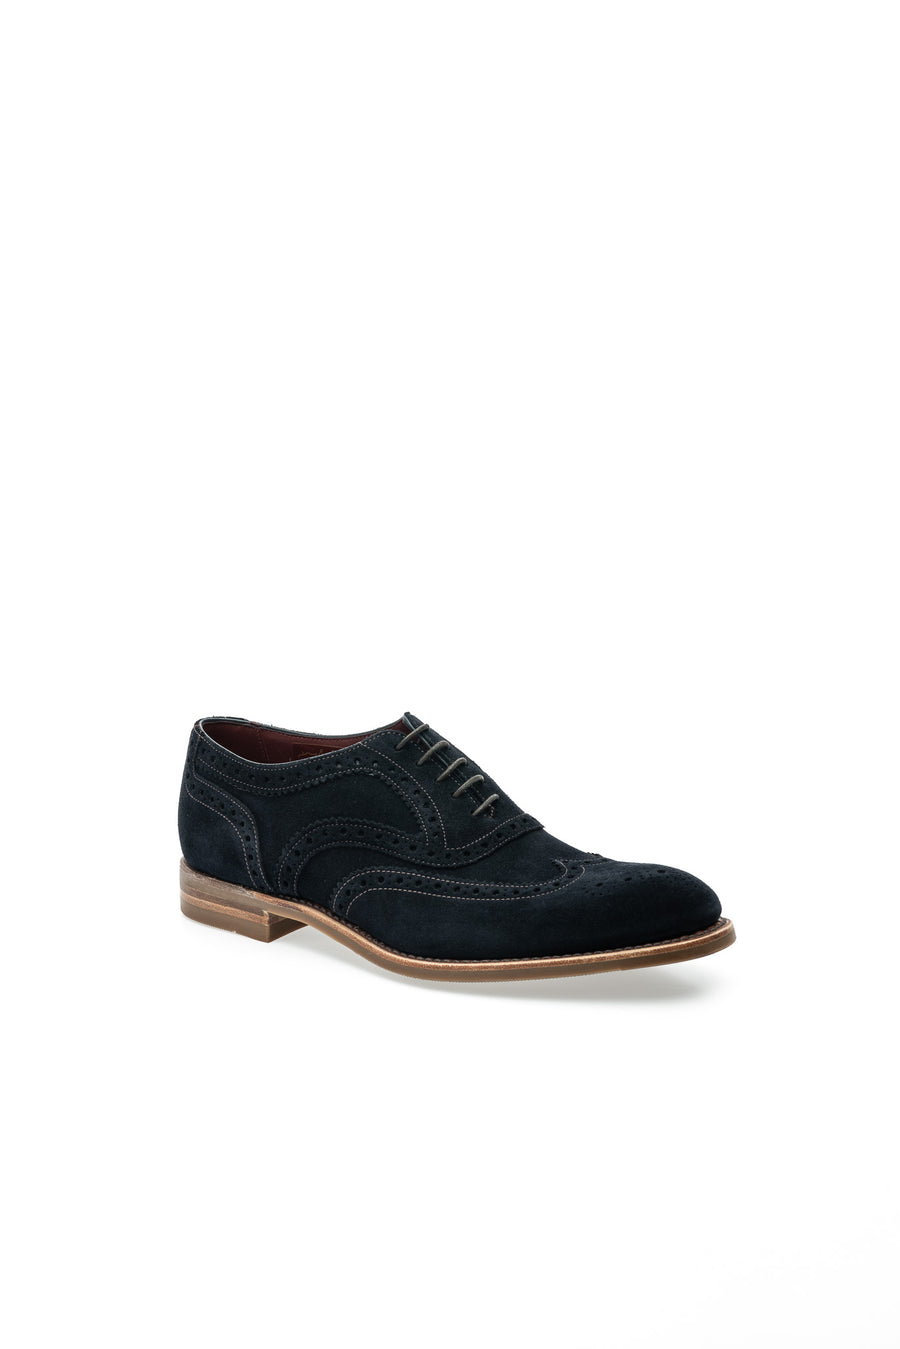 LOAKE KERRIDGE SUEDE SHOES